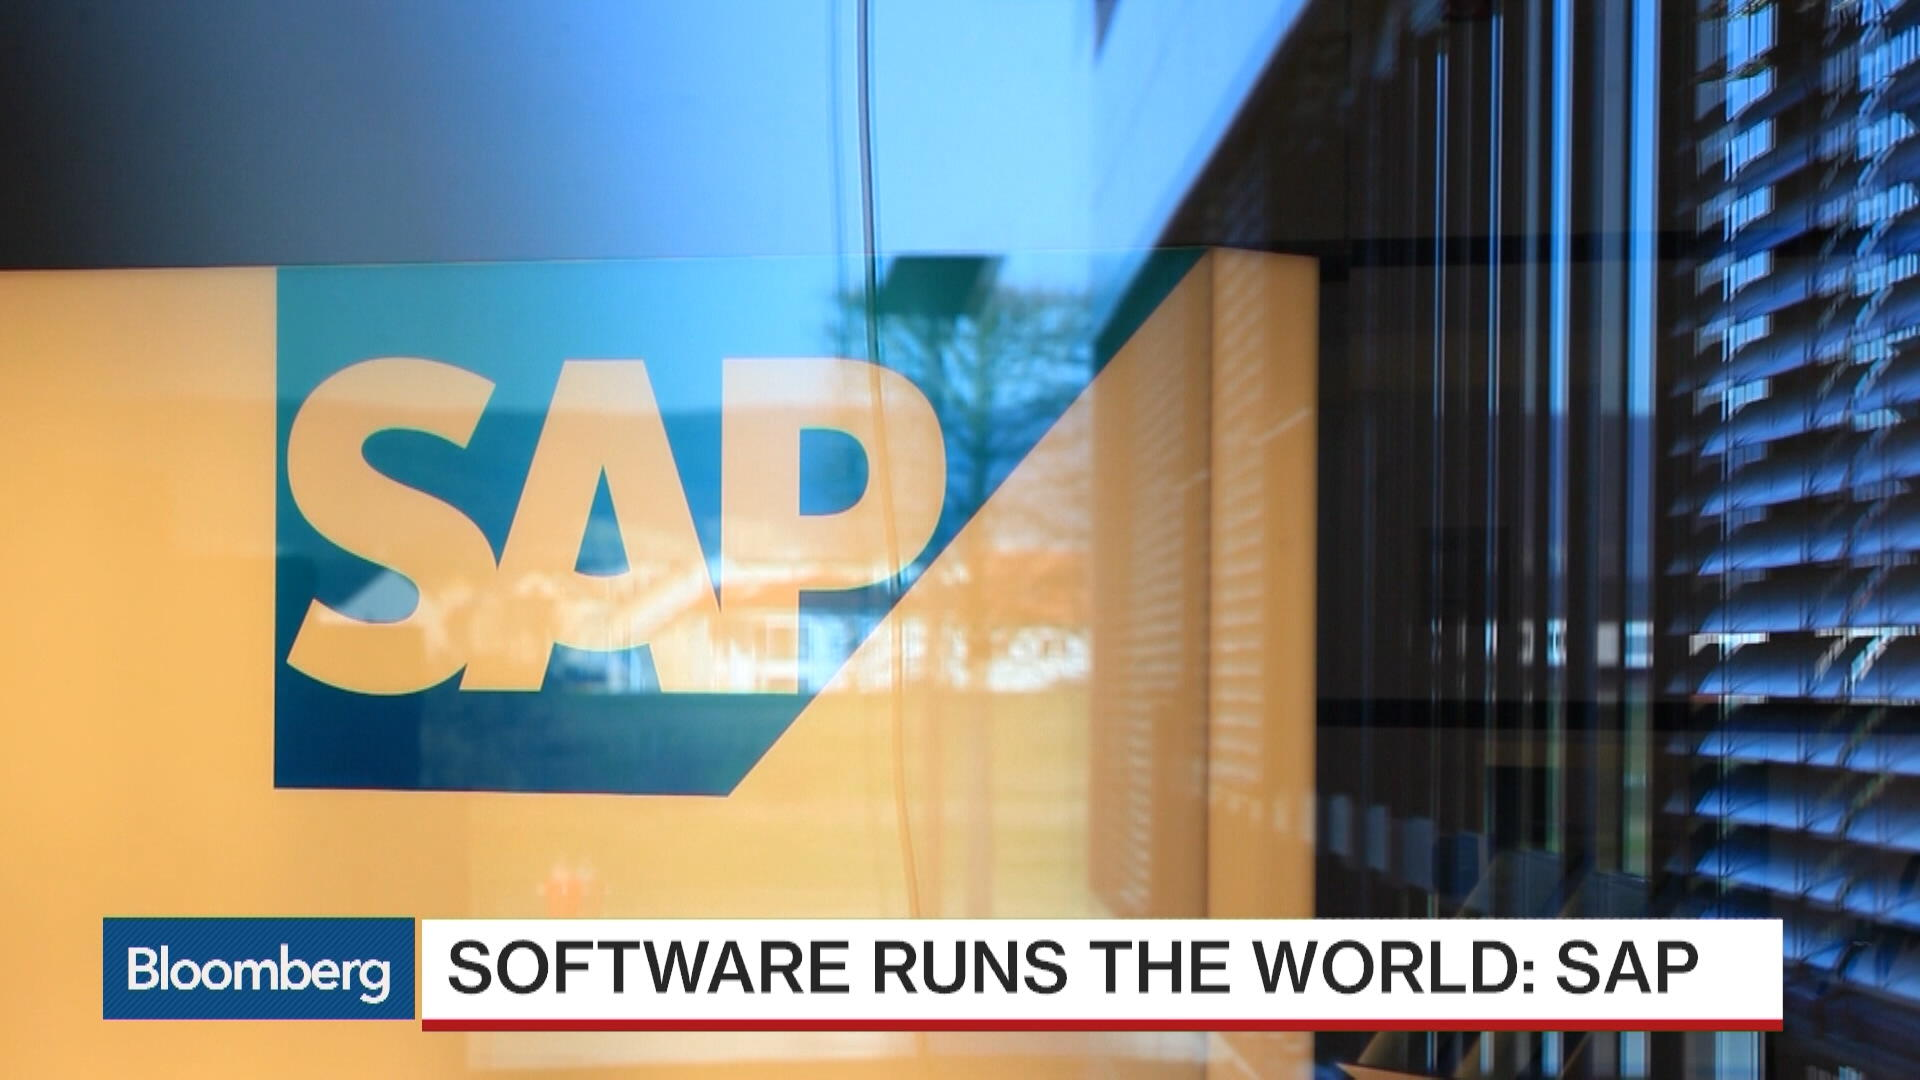 SAP Sees Its Future in the Cloud   Bloomberg 1920x1080